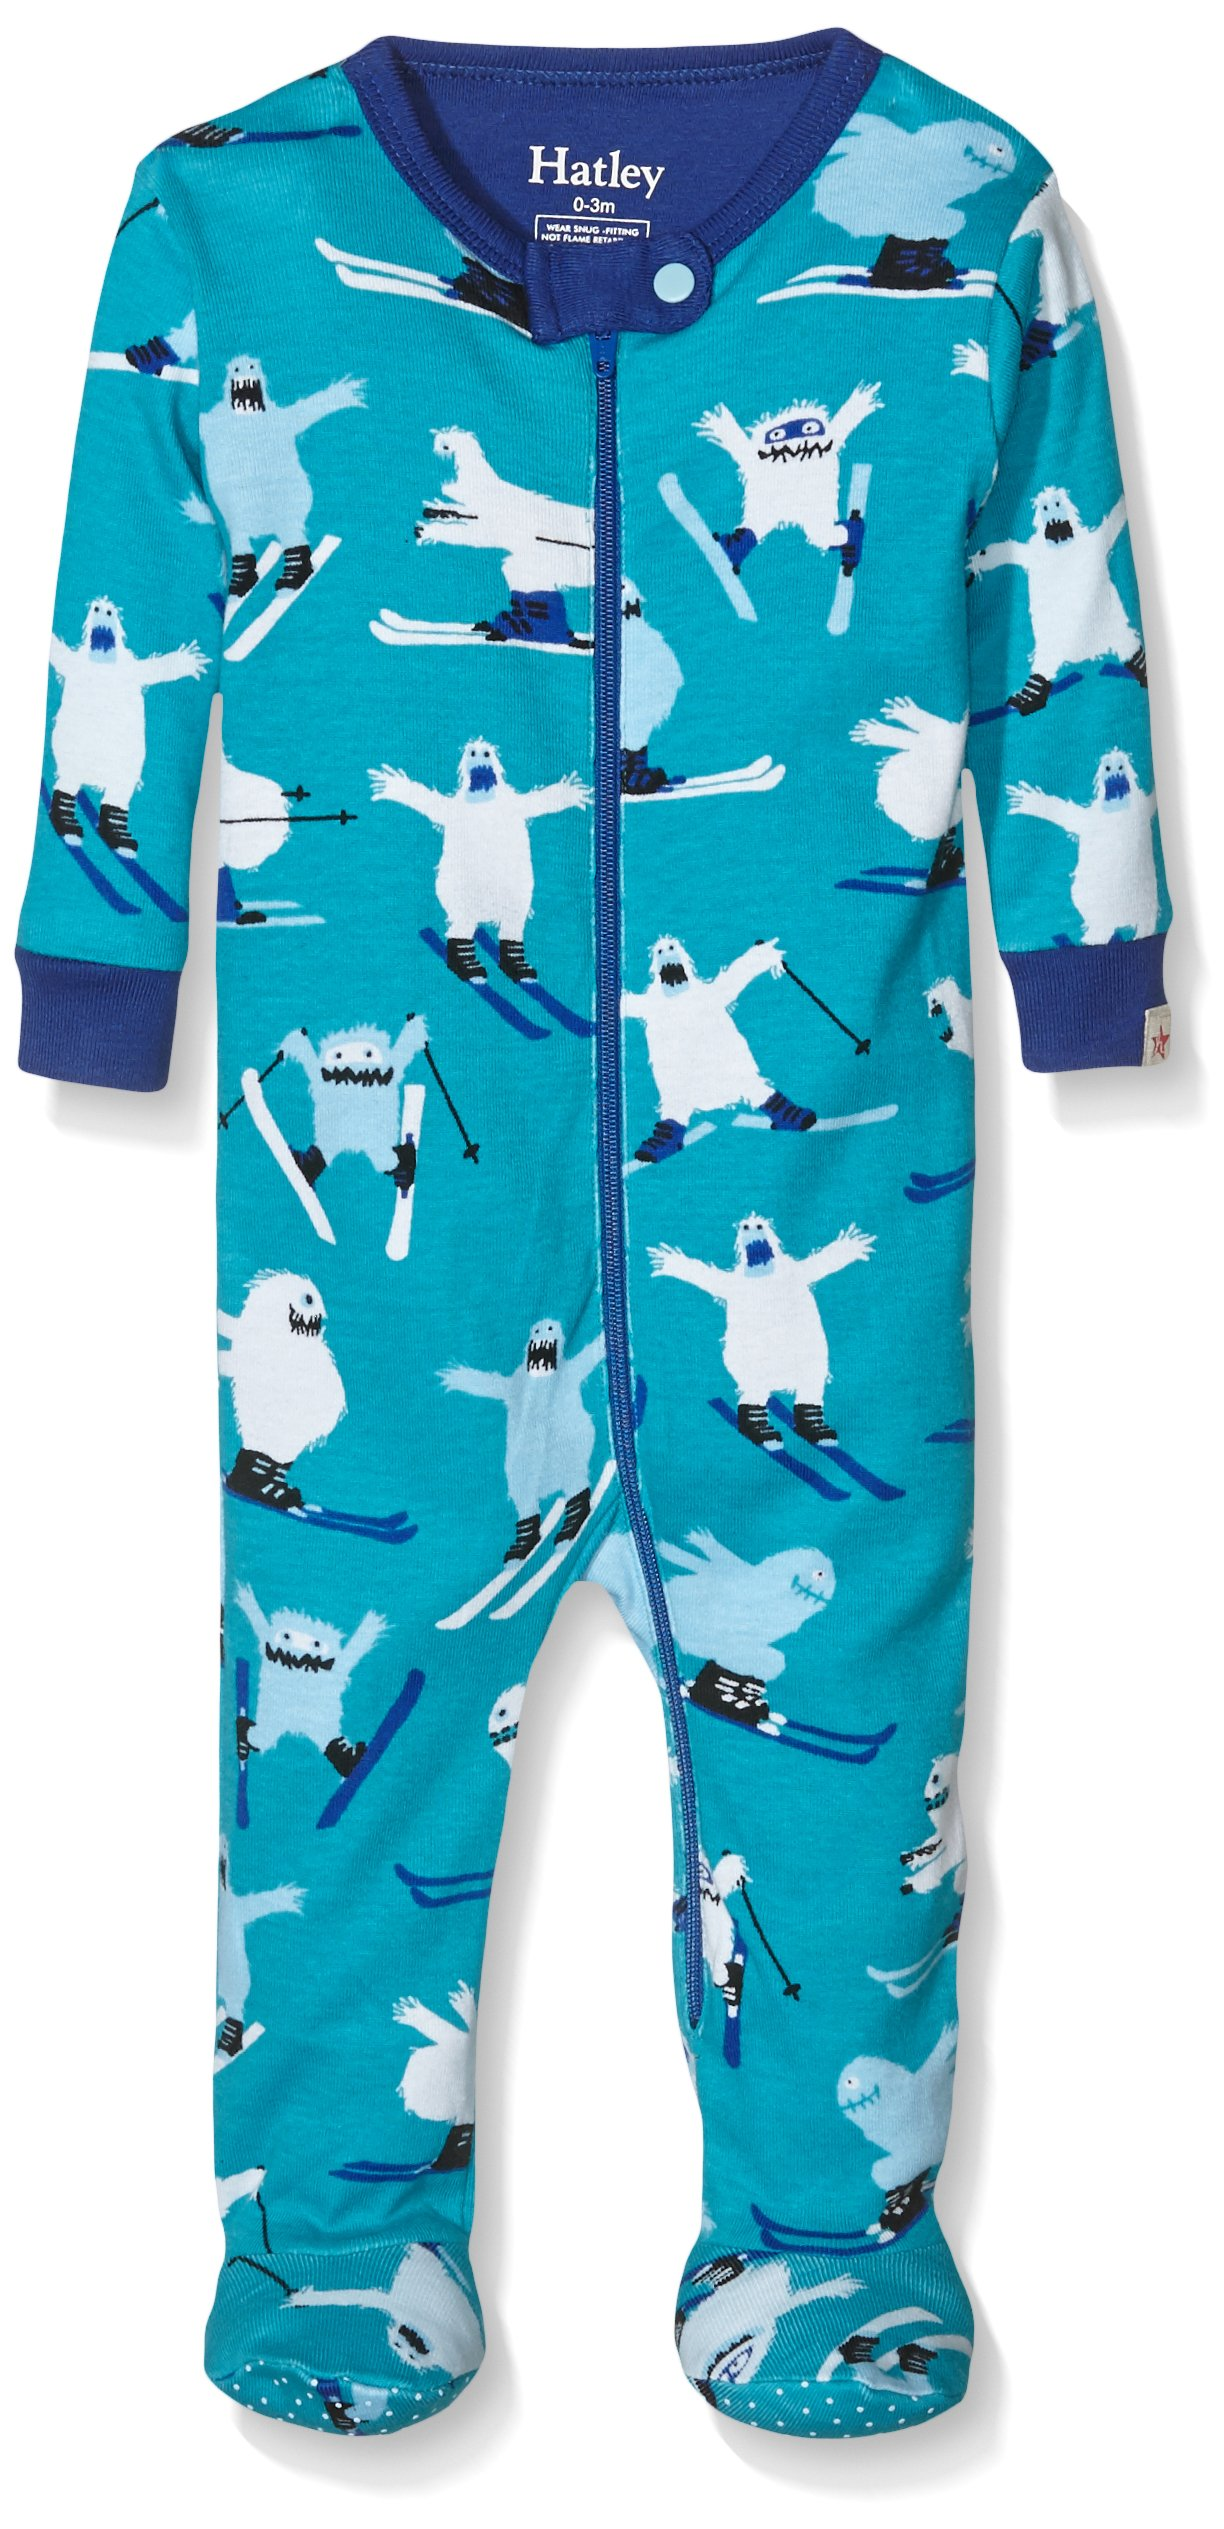 Hatley Boys' Footed Coverall, Ski Monsters, 3-6 by Hatley (Image #2)